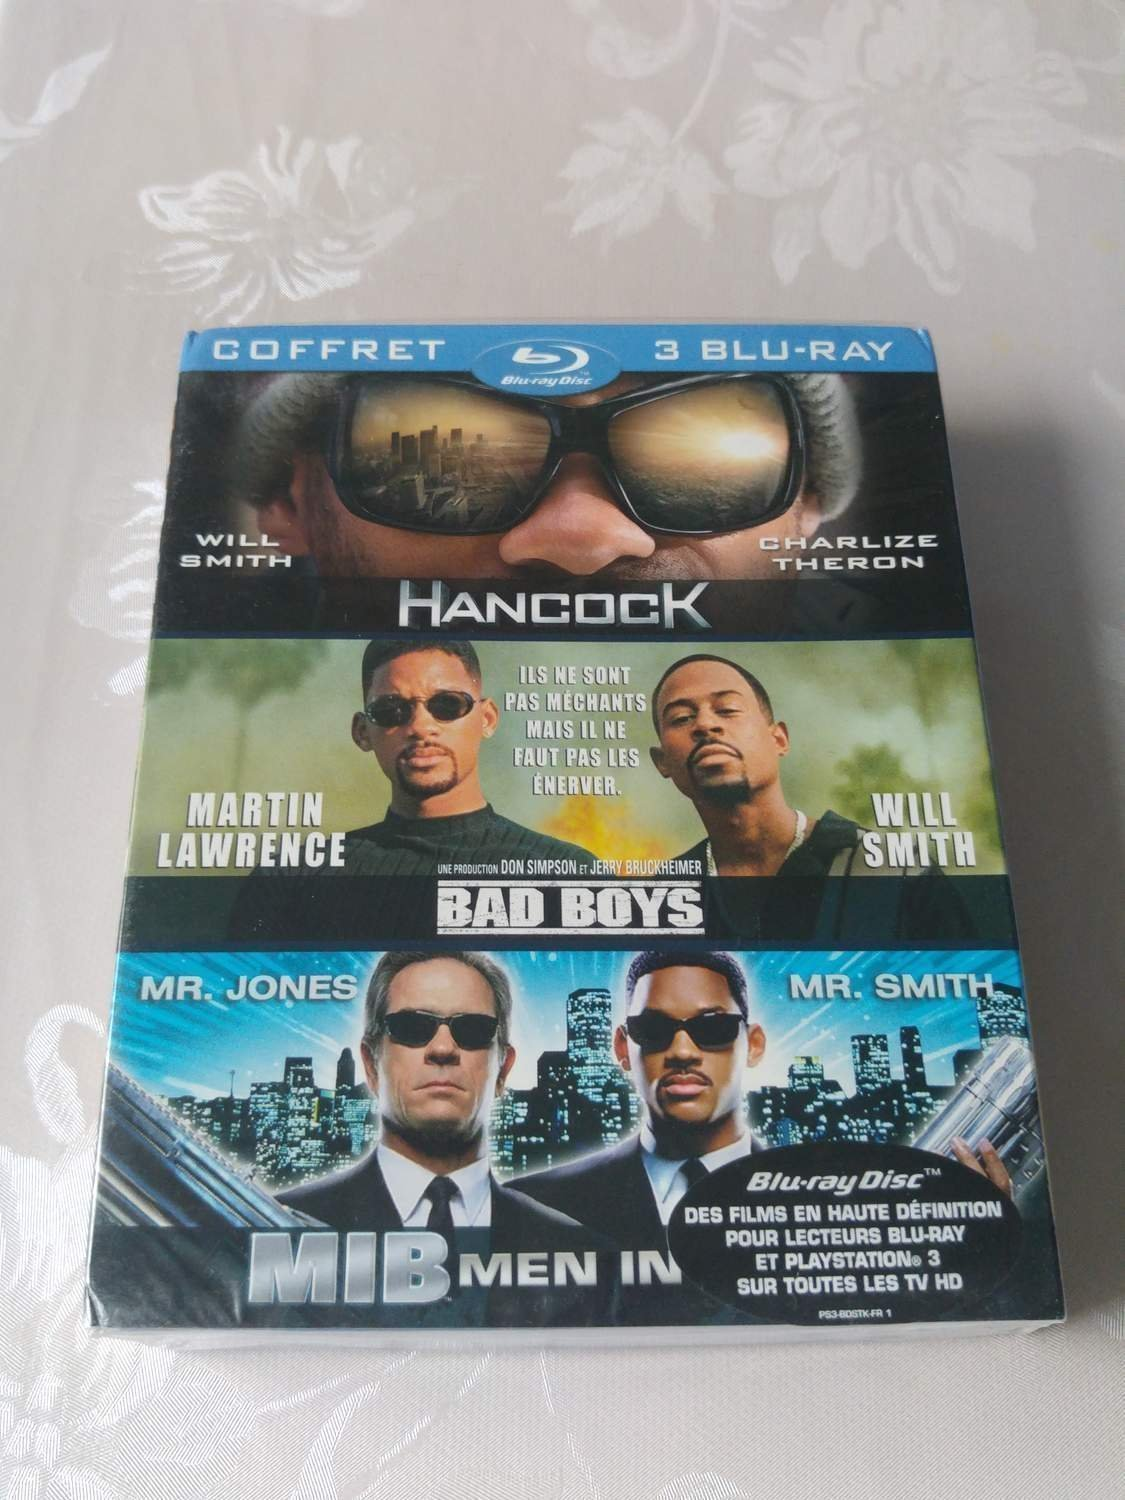 WILL SMITH COLLECTION (Blu-ray Box 3-Disc) Hancock, Men in Black, Bad Boys